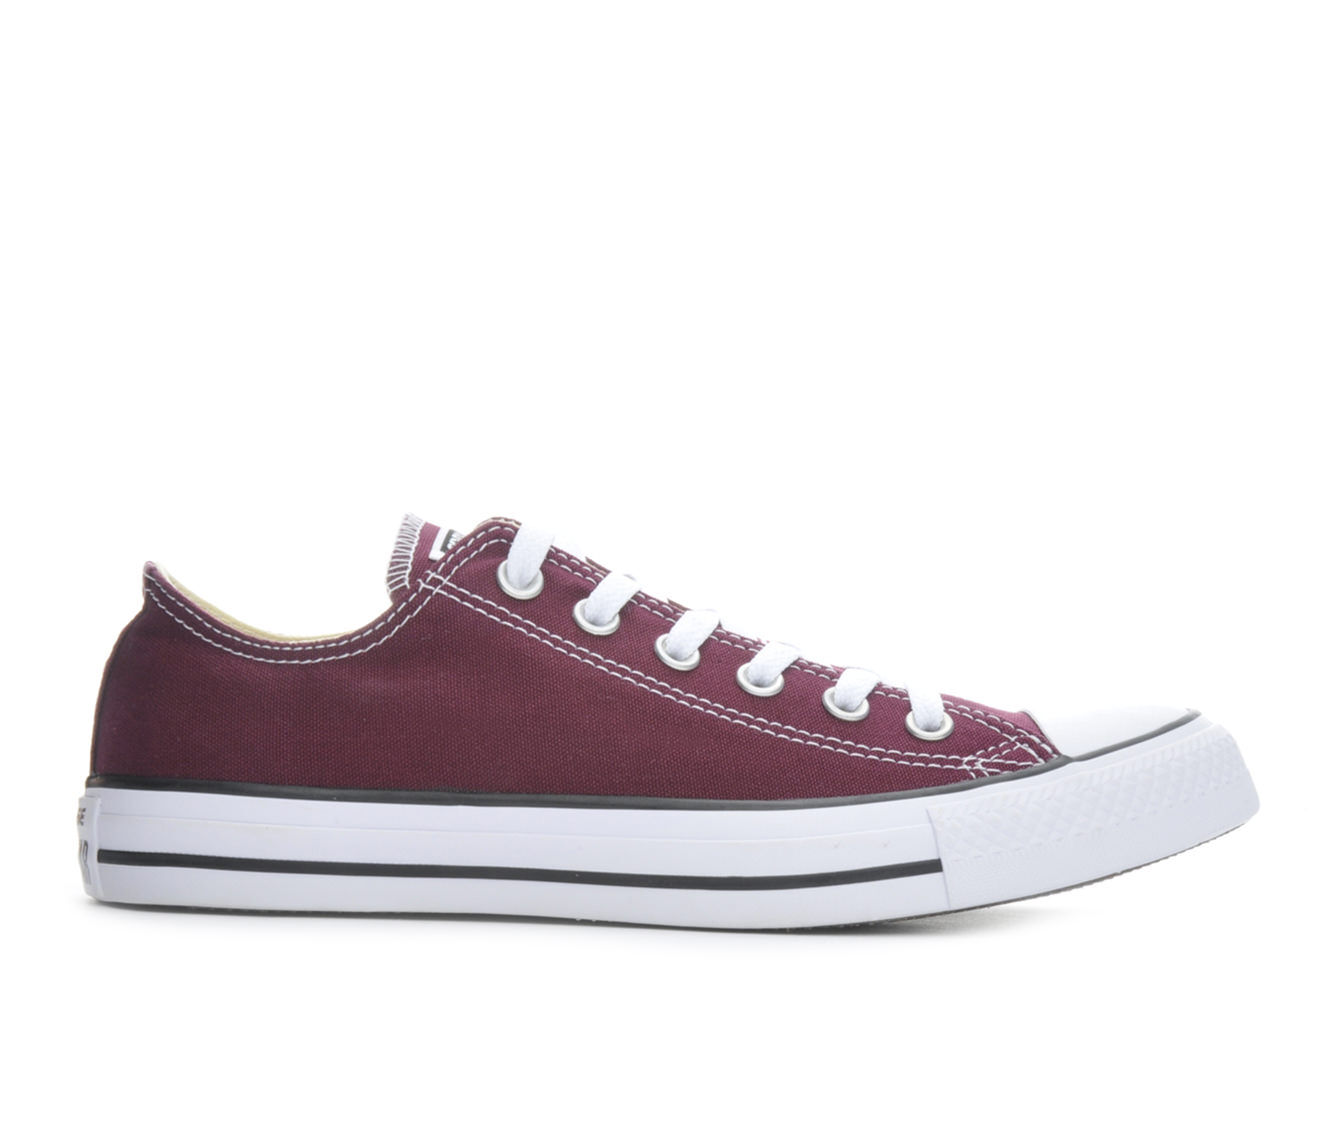 Images. Adults' Converse Chuck Taylor Seasonal Sneakers